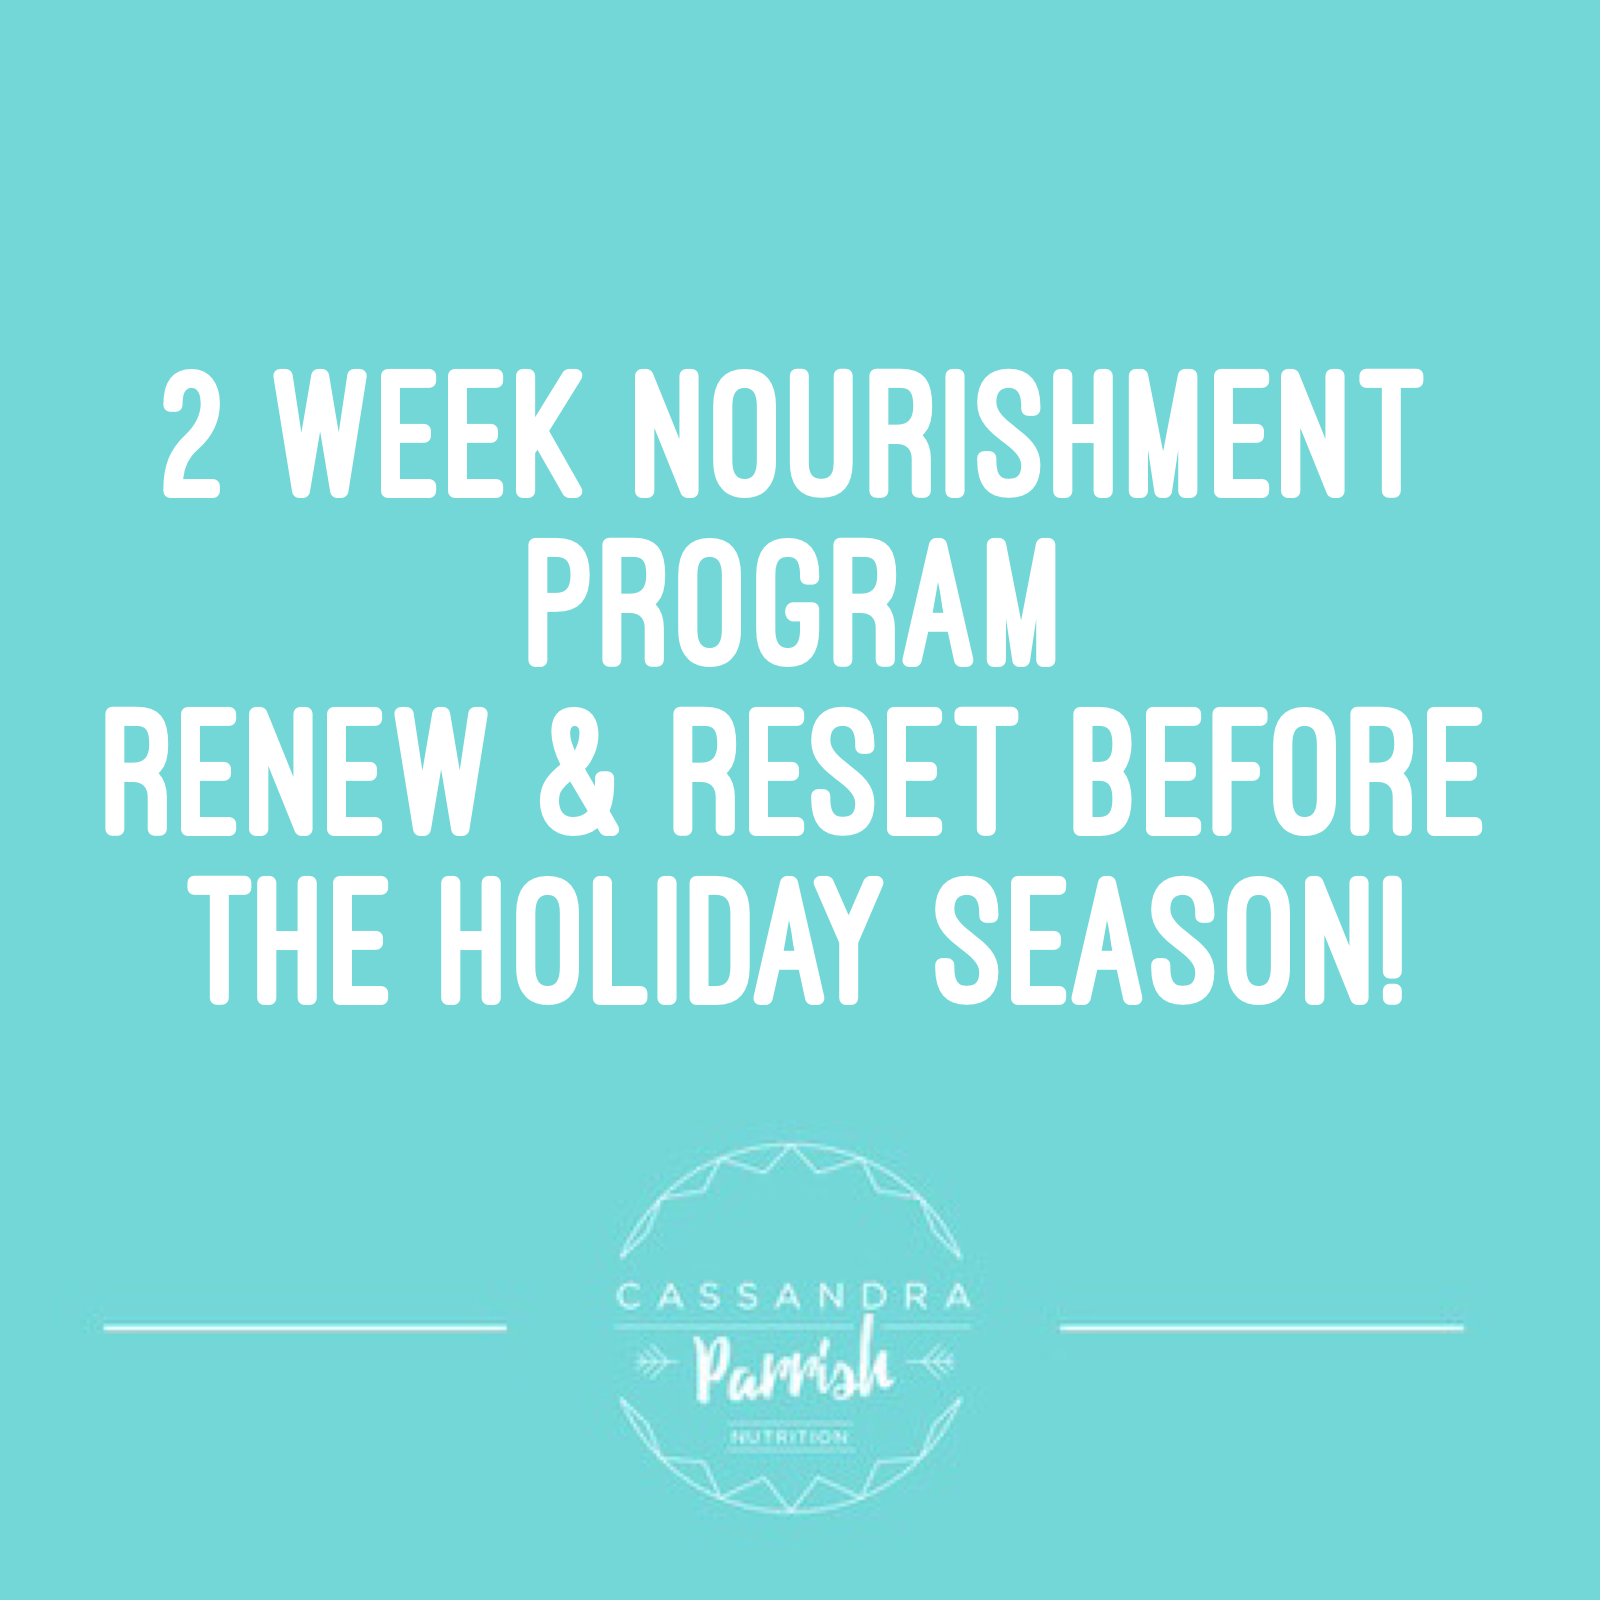 Two Week Nourishment Program Before The Silly Season